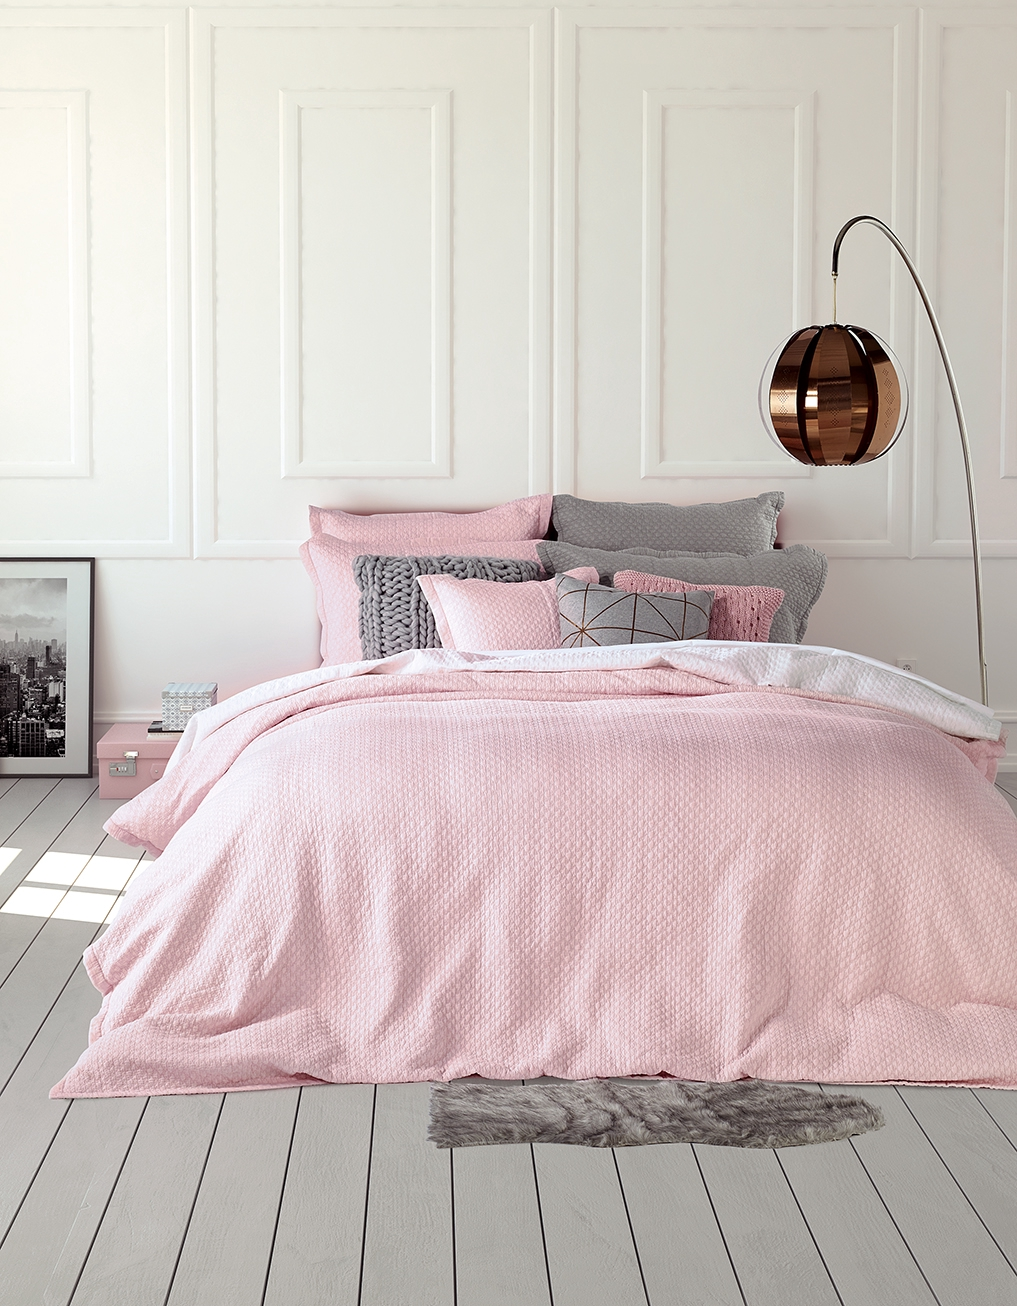 housse de couette chanel rose. Black Bedroom Furniture Sets. Home Design Ideas